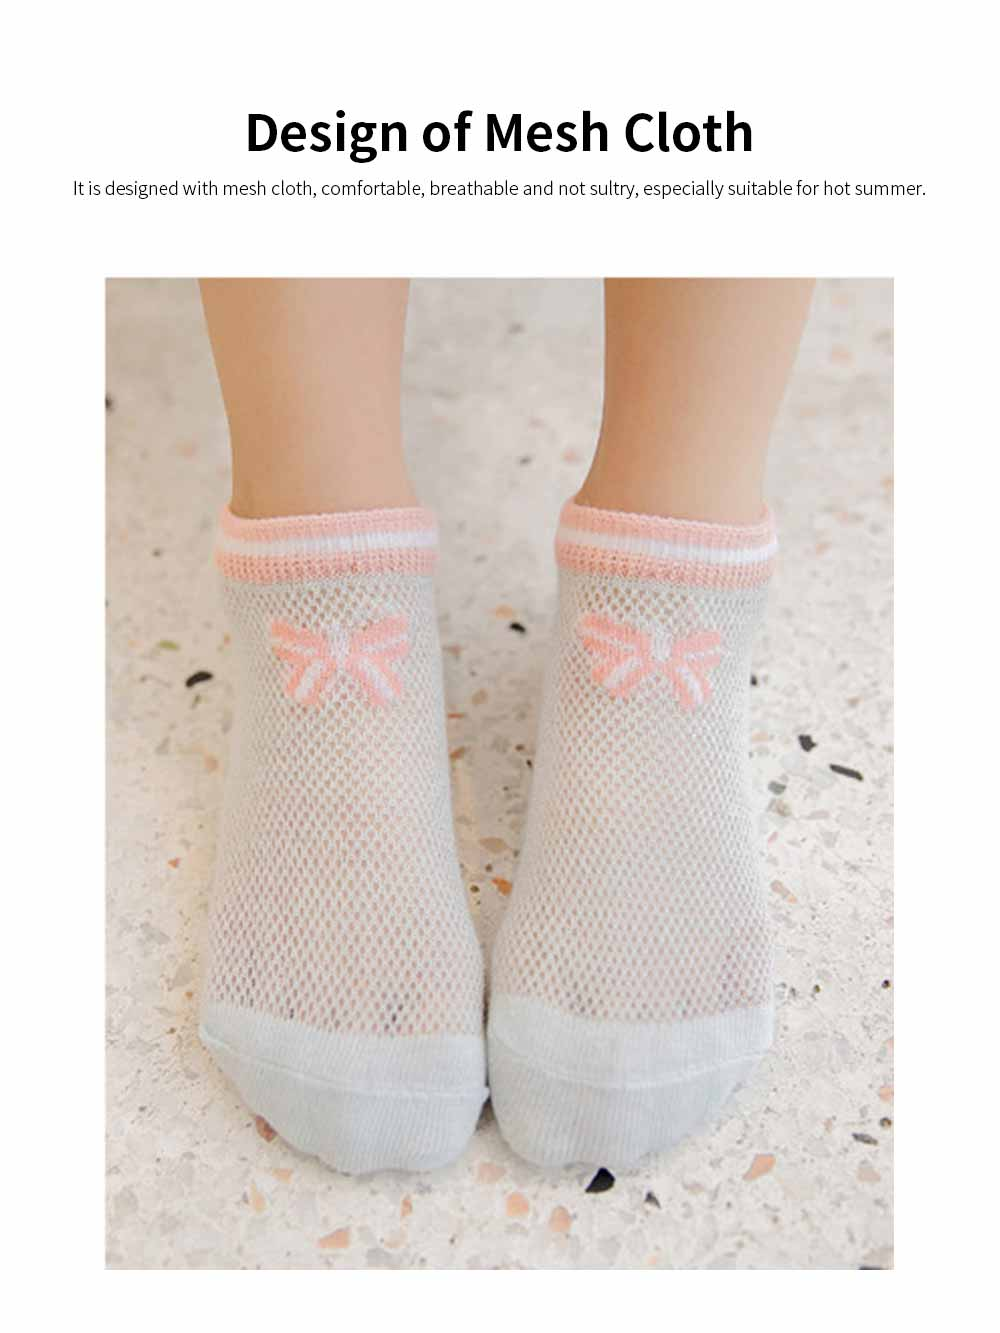 Children 's Thin Mesh Socks All-cotton Breathable Shallow mouth Cute Children's Socks For Summer 3